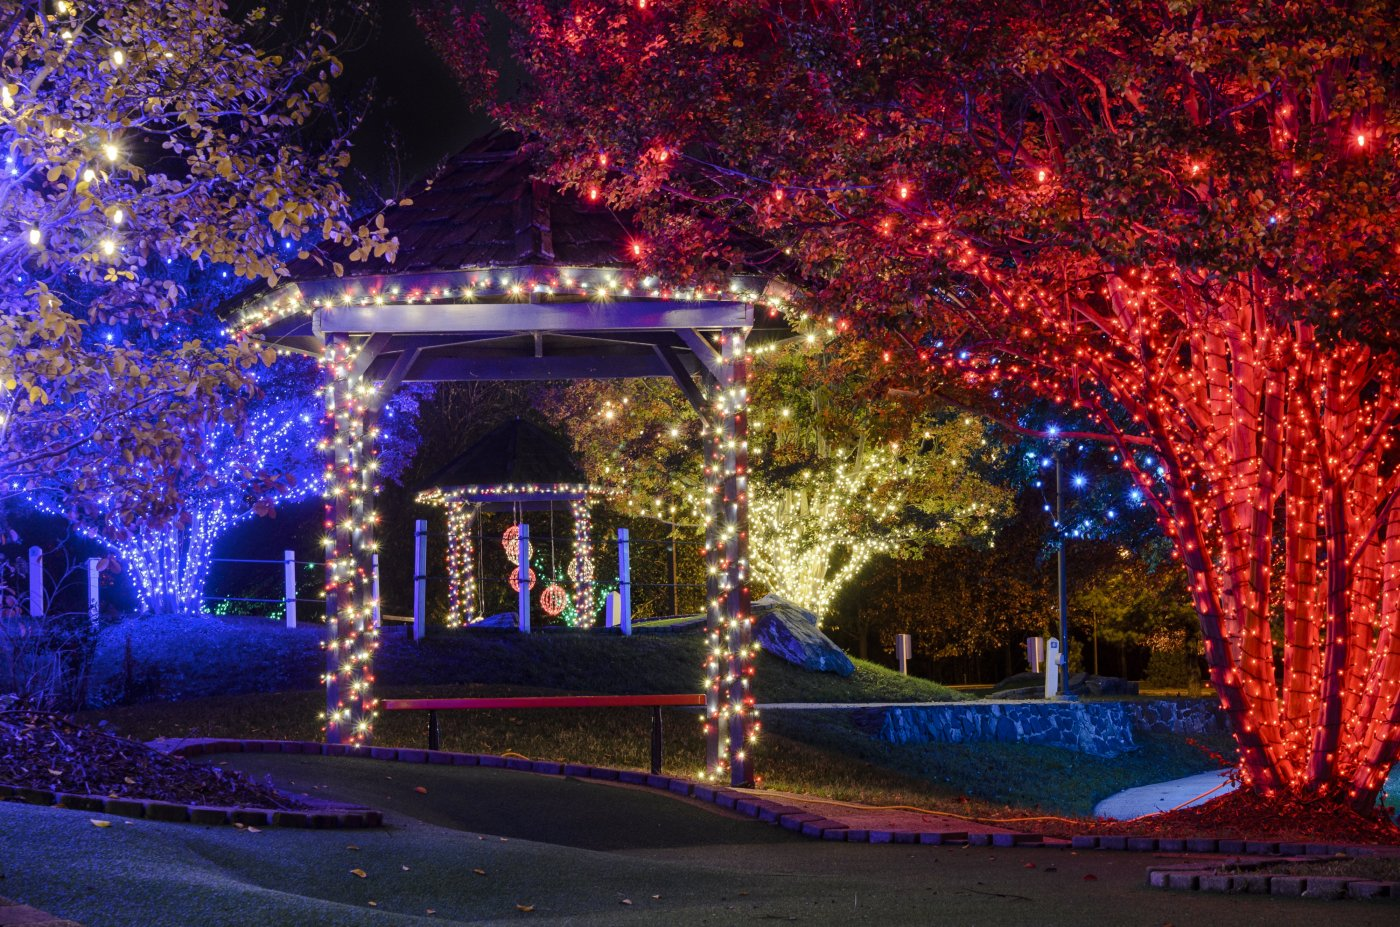 Glide across the ice at Ice & Lights, The Winter Village at Cameron Run in Alexandria, Virginia. The waterpark will be transformed mid-November through February into a winter wonderland with an ice rink, beautifully lit photo ops, music and more!